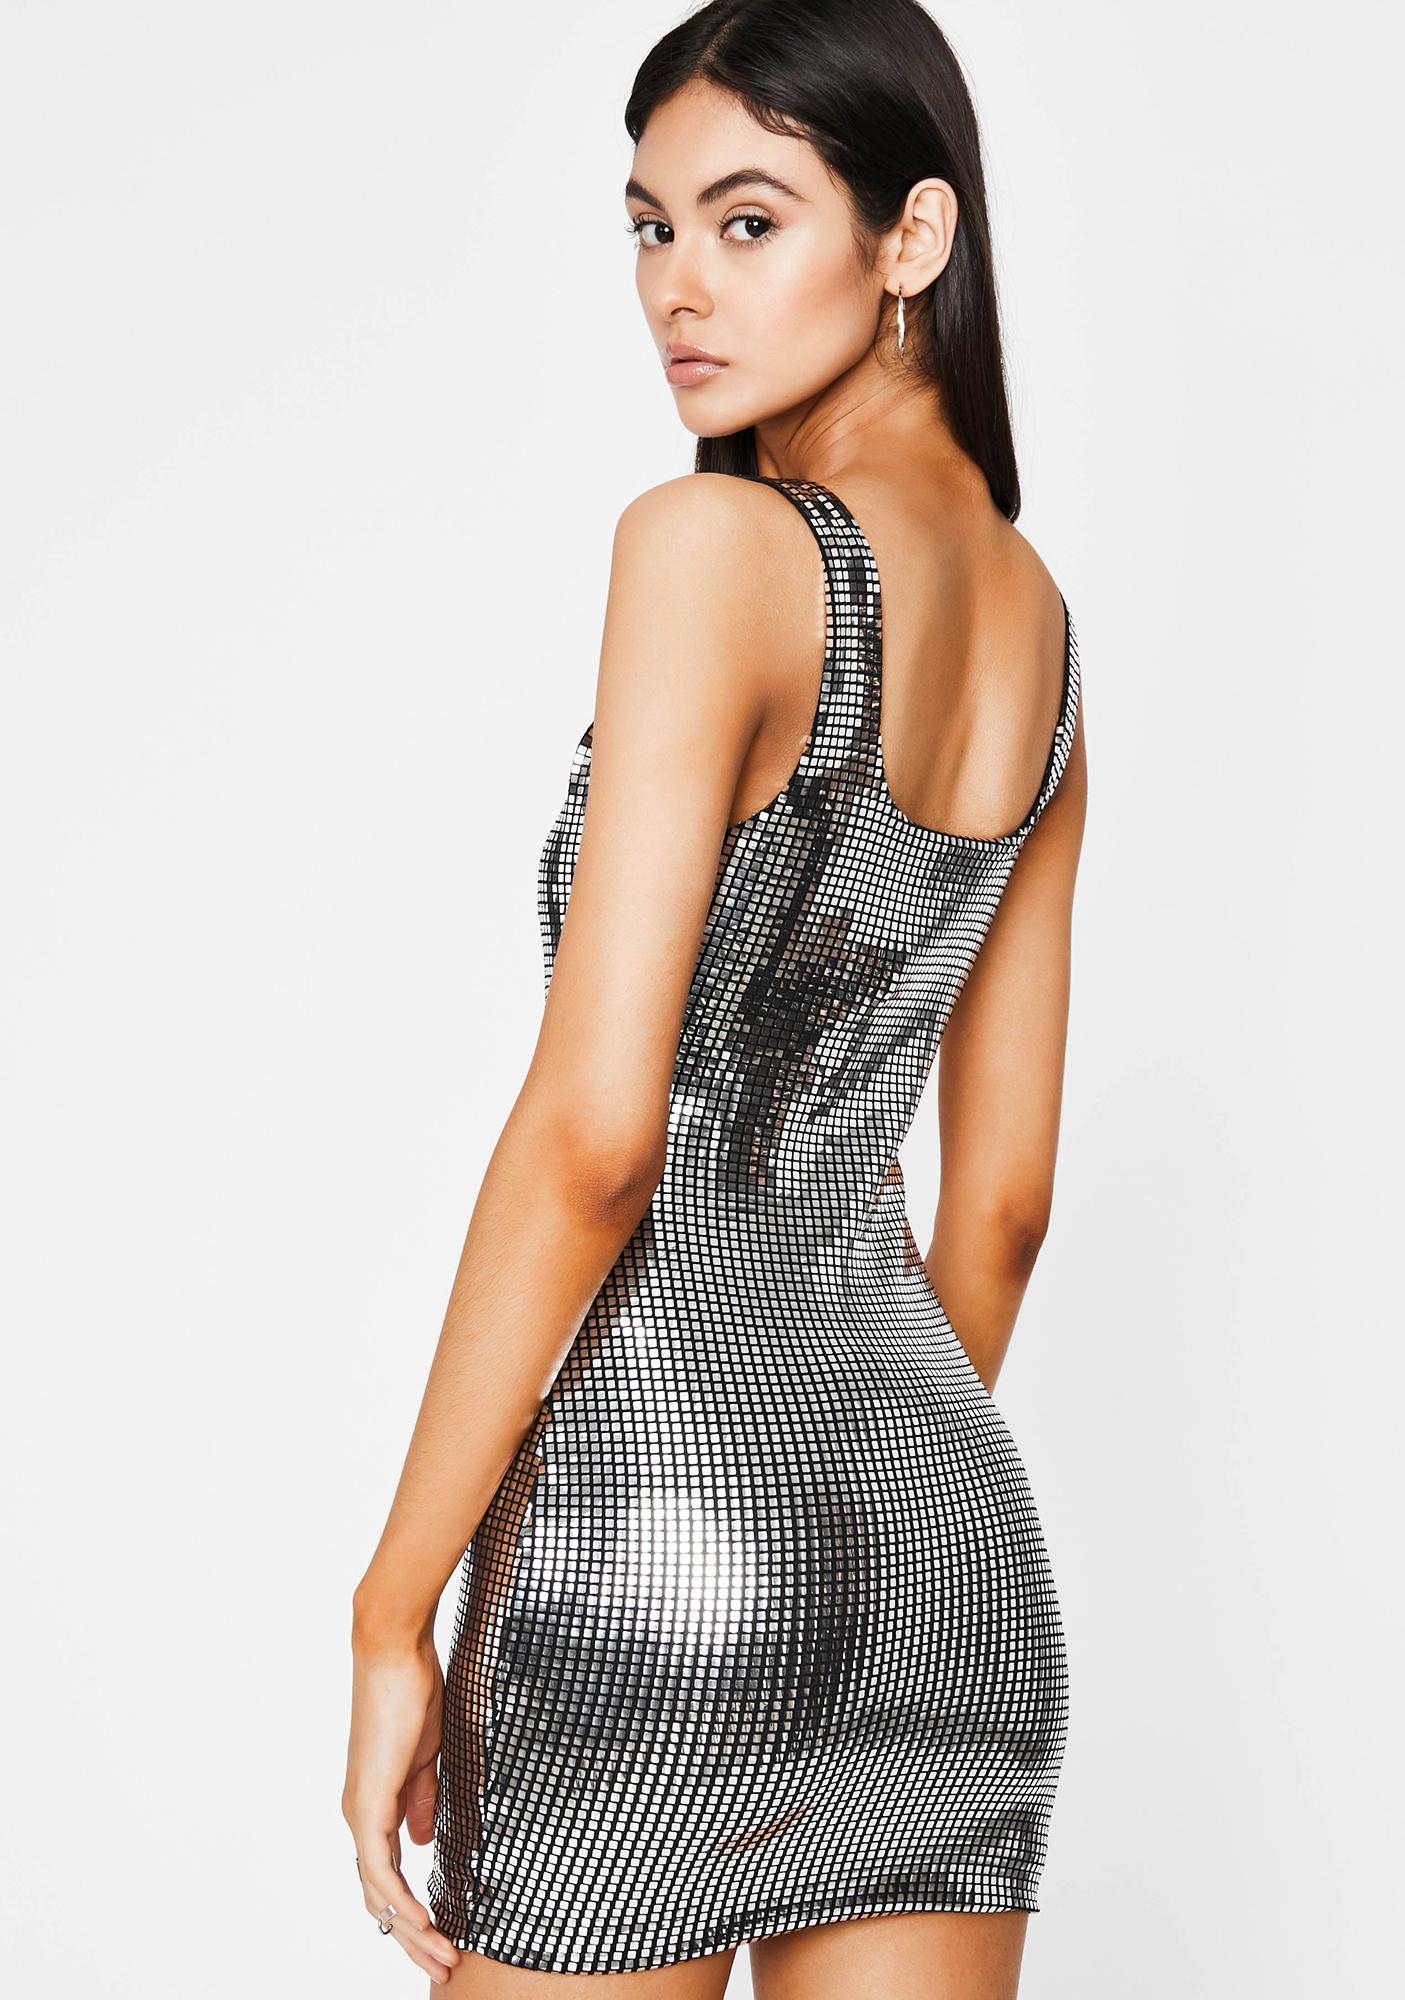 Stay Shinin' Sequin Dress